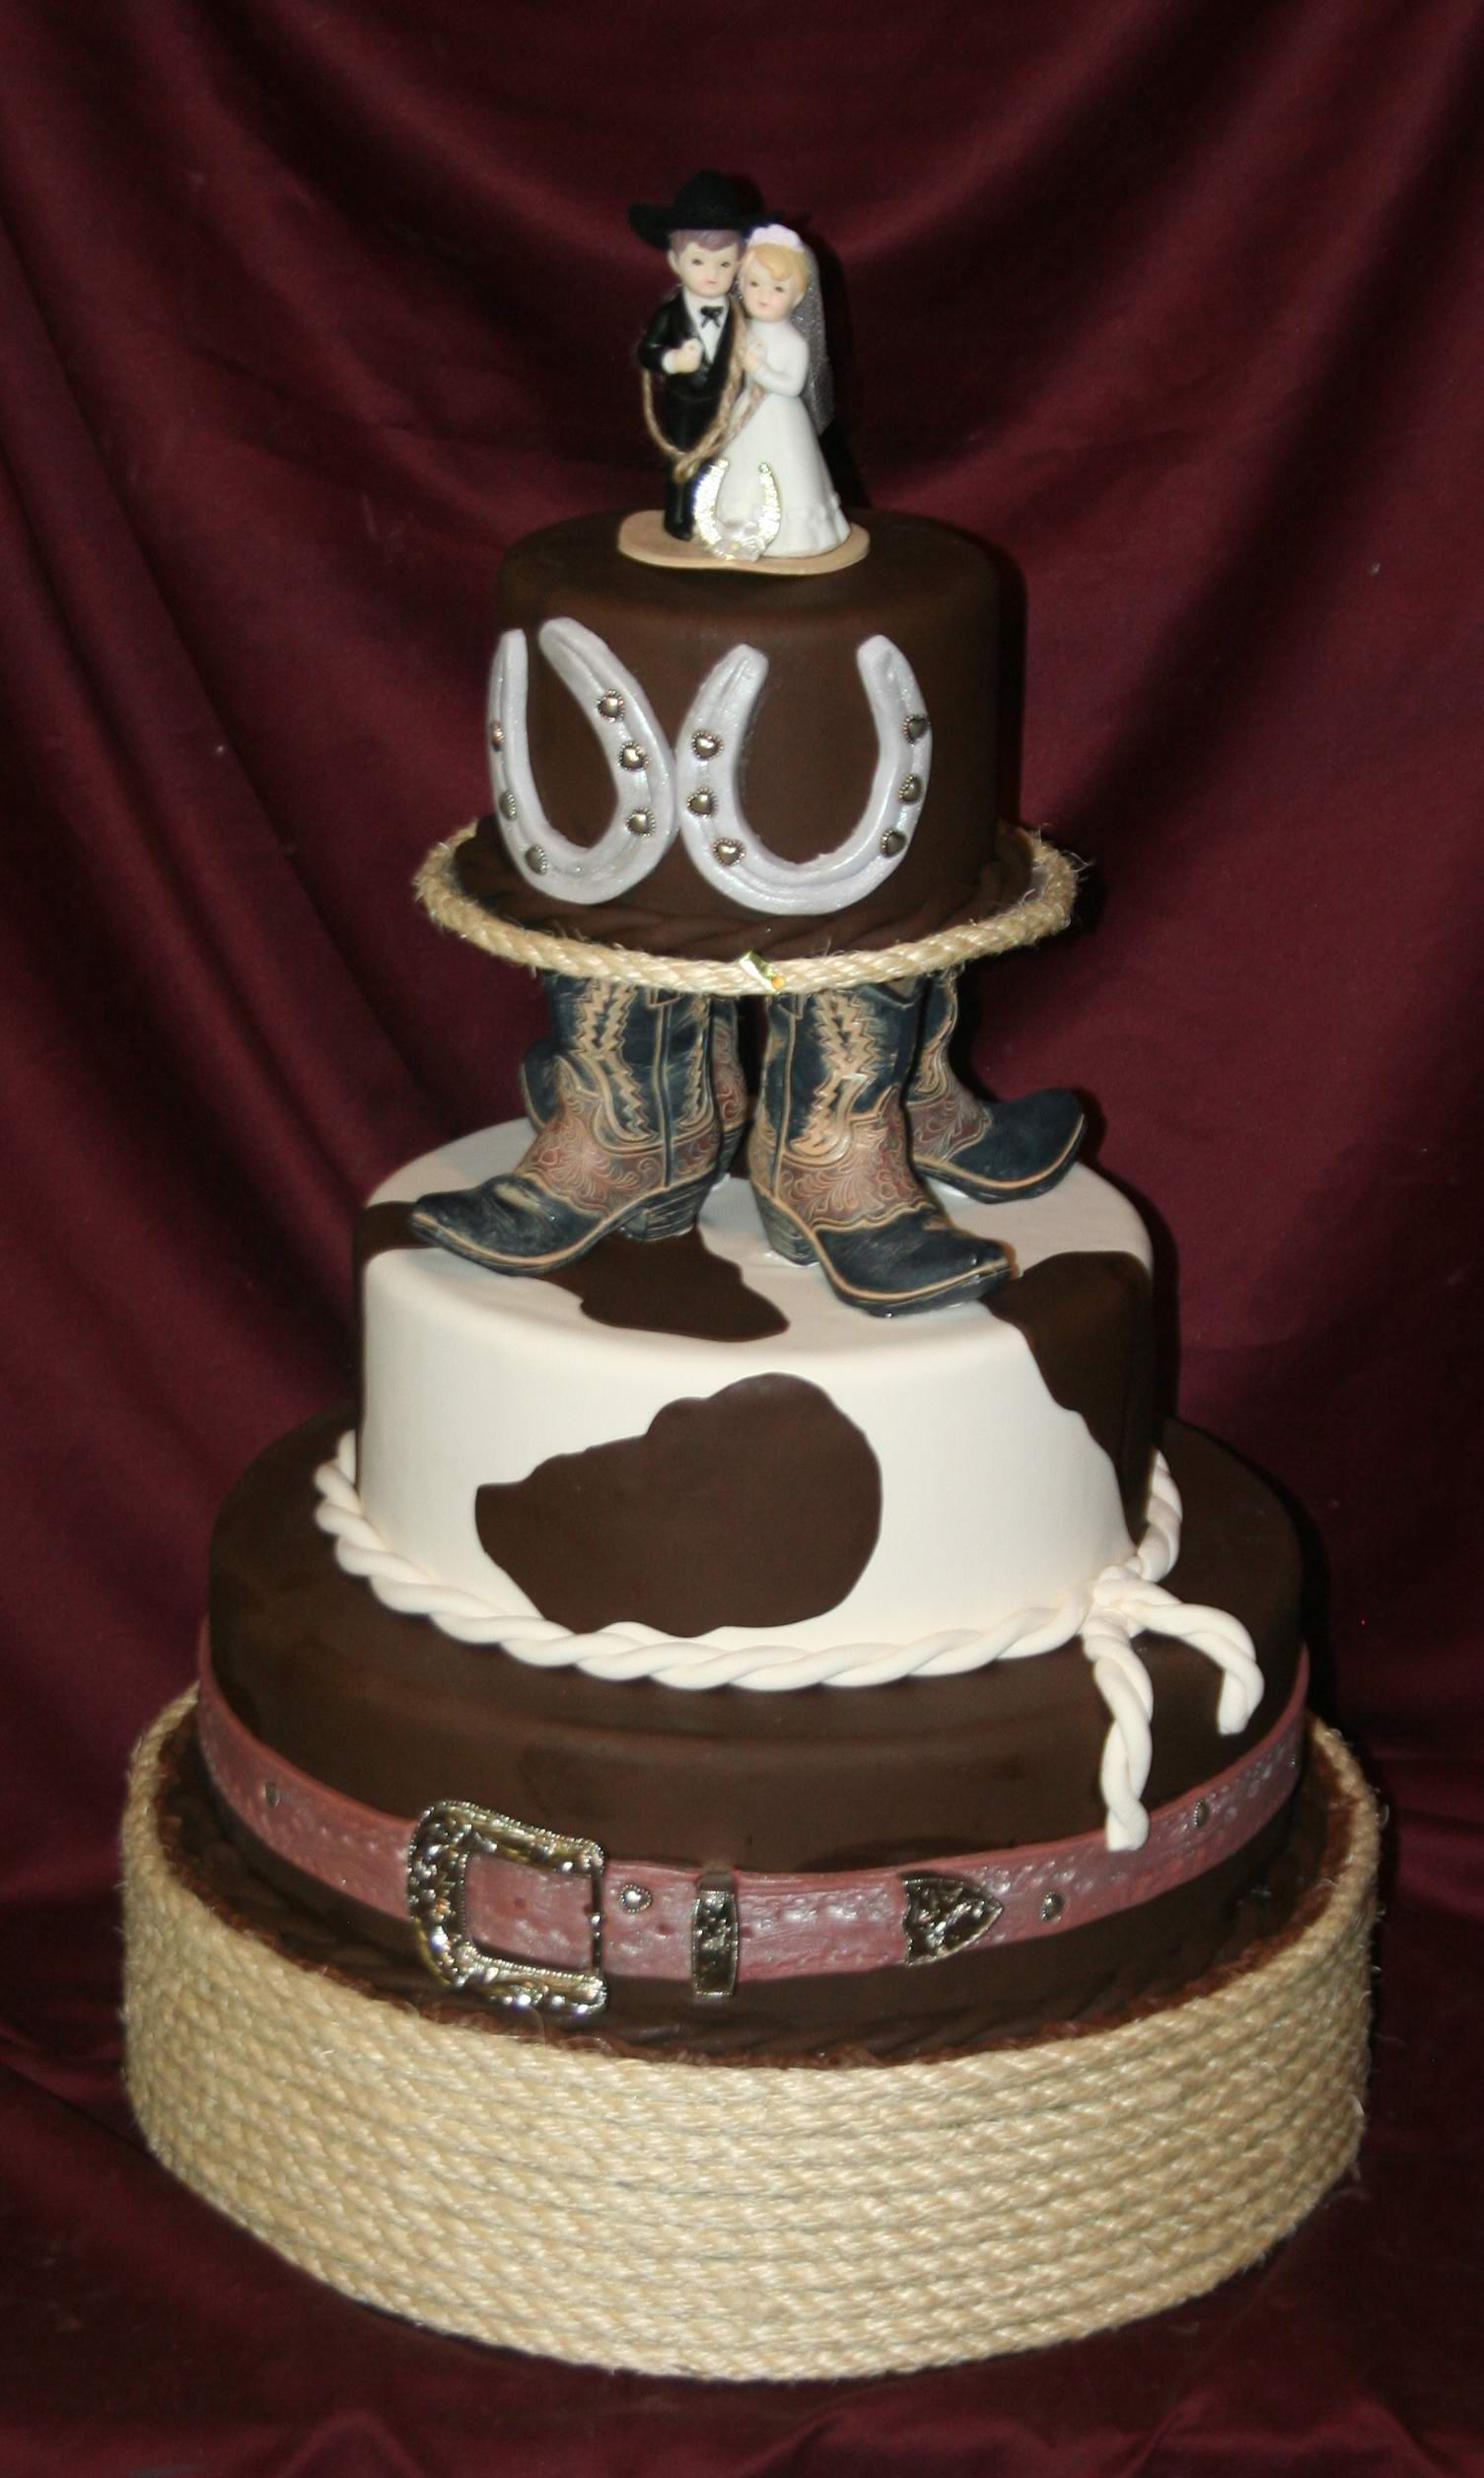 Western Themed Cake Add A Cowboy Hat To Top Of Cake To Make This A Wonderful Birthday Cake A Western Wedding Cakes Cowboy Wedding Cakes Country Wedding Cakes